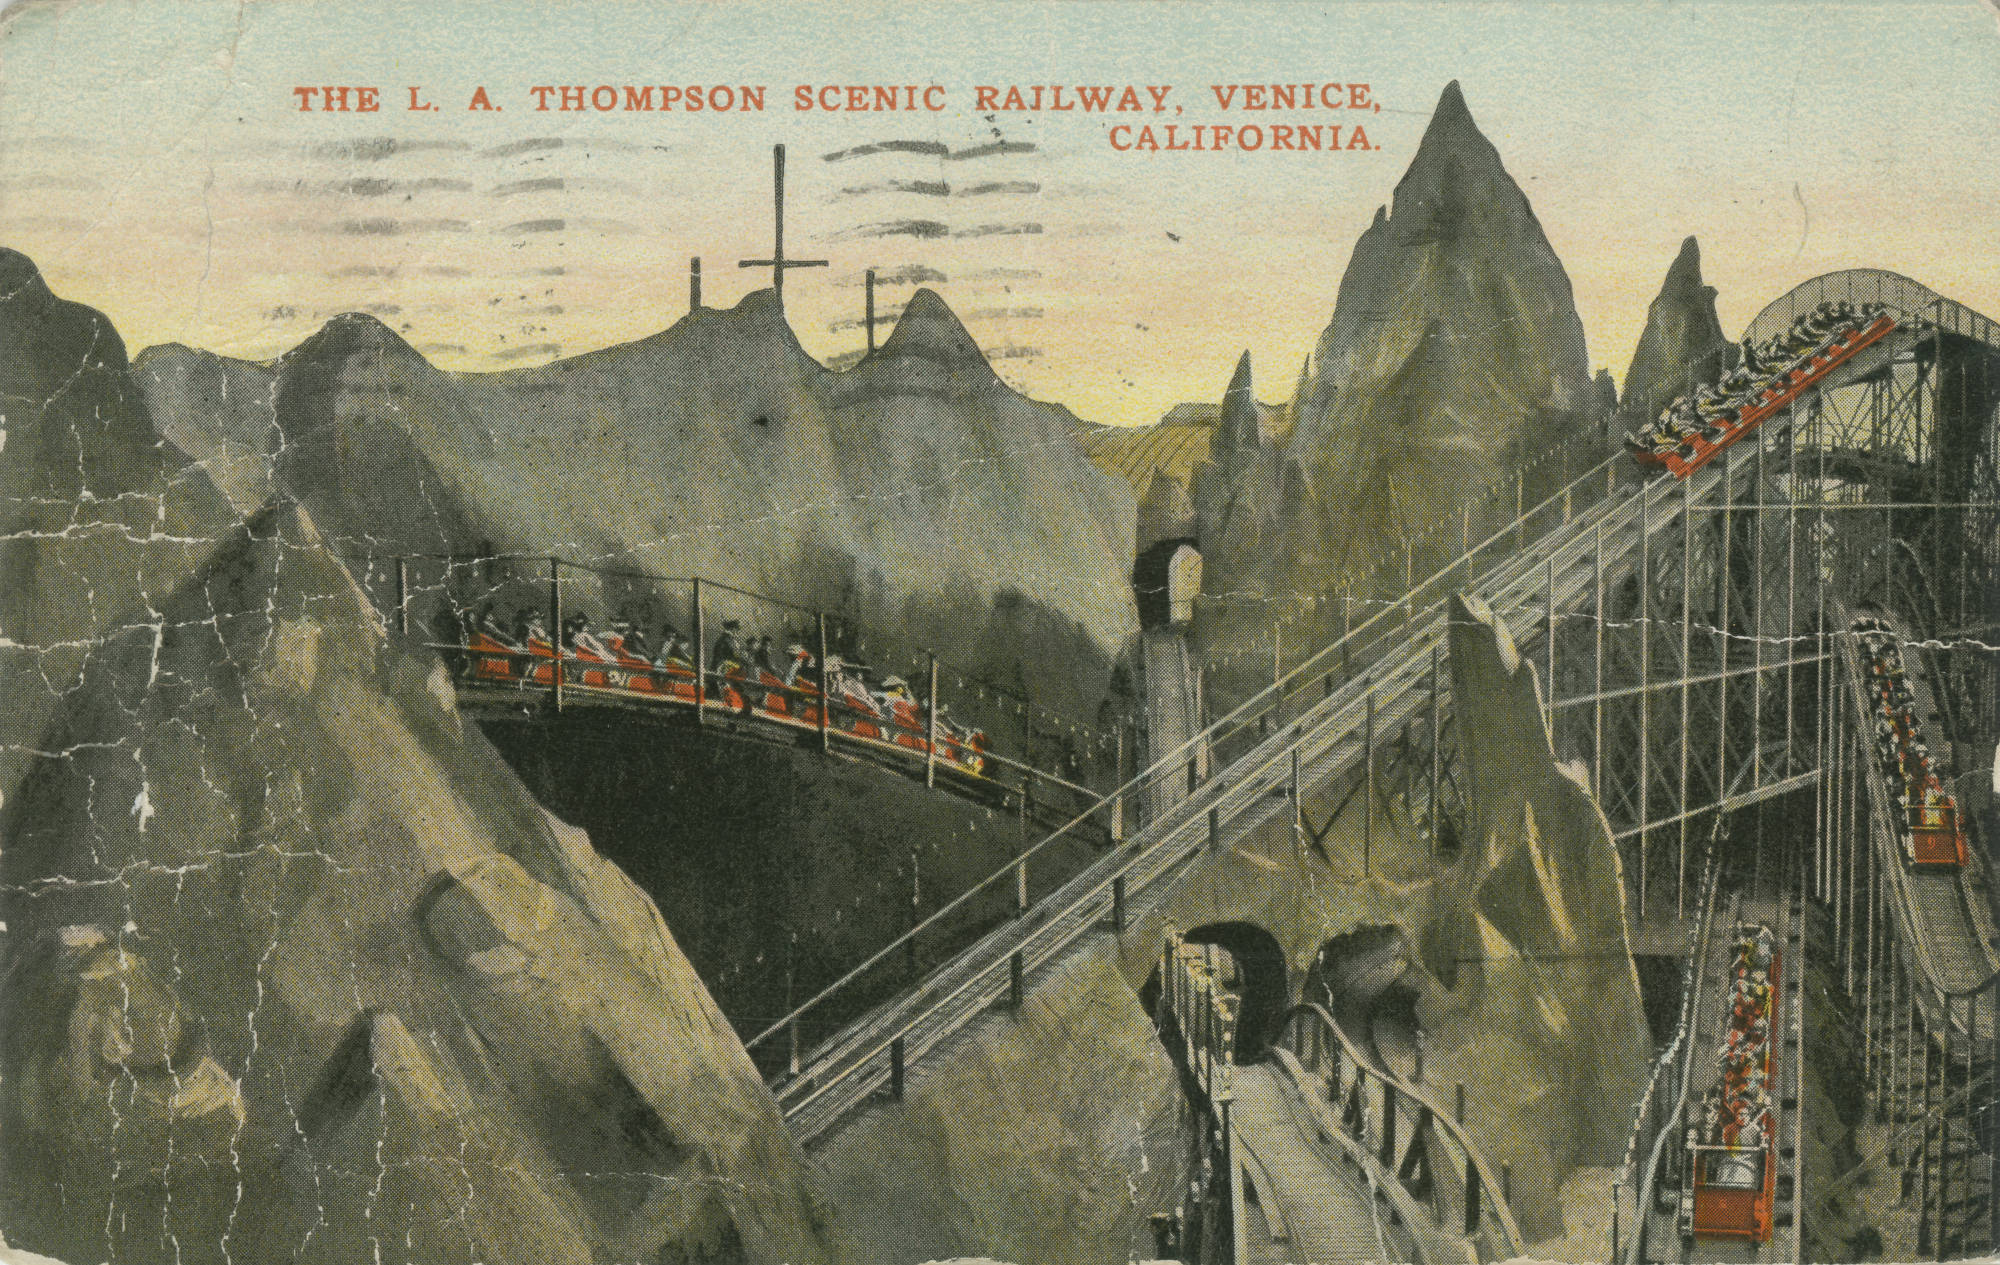 Postcard of the L. A. Thompson Scenic Railway